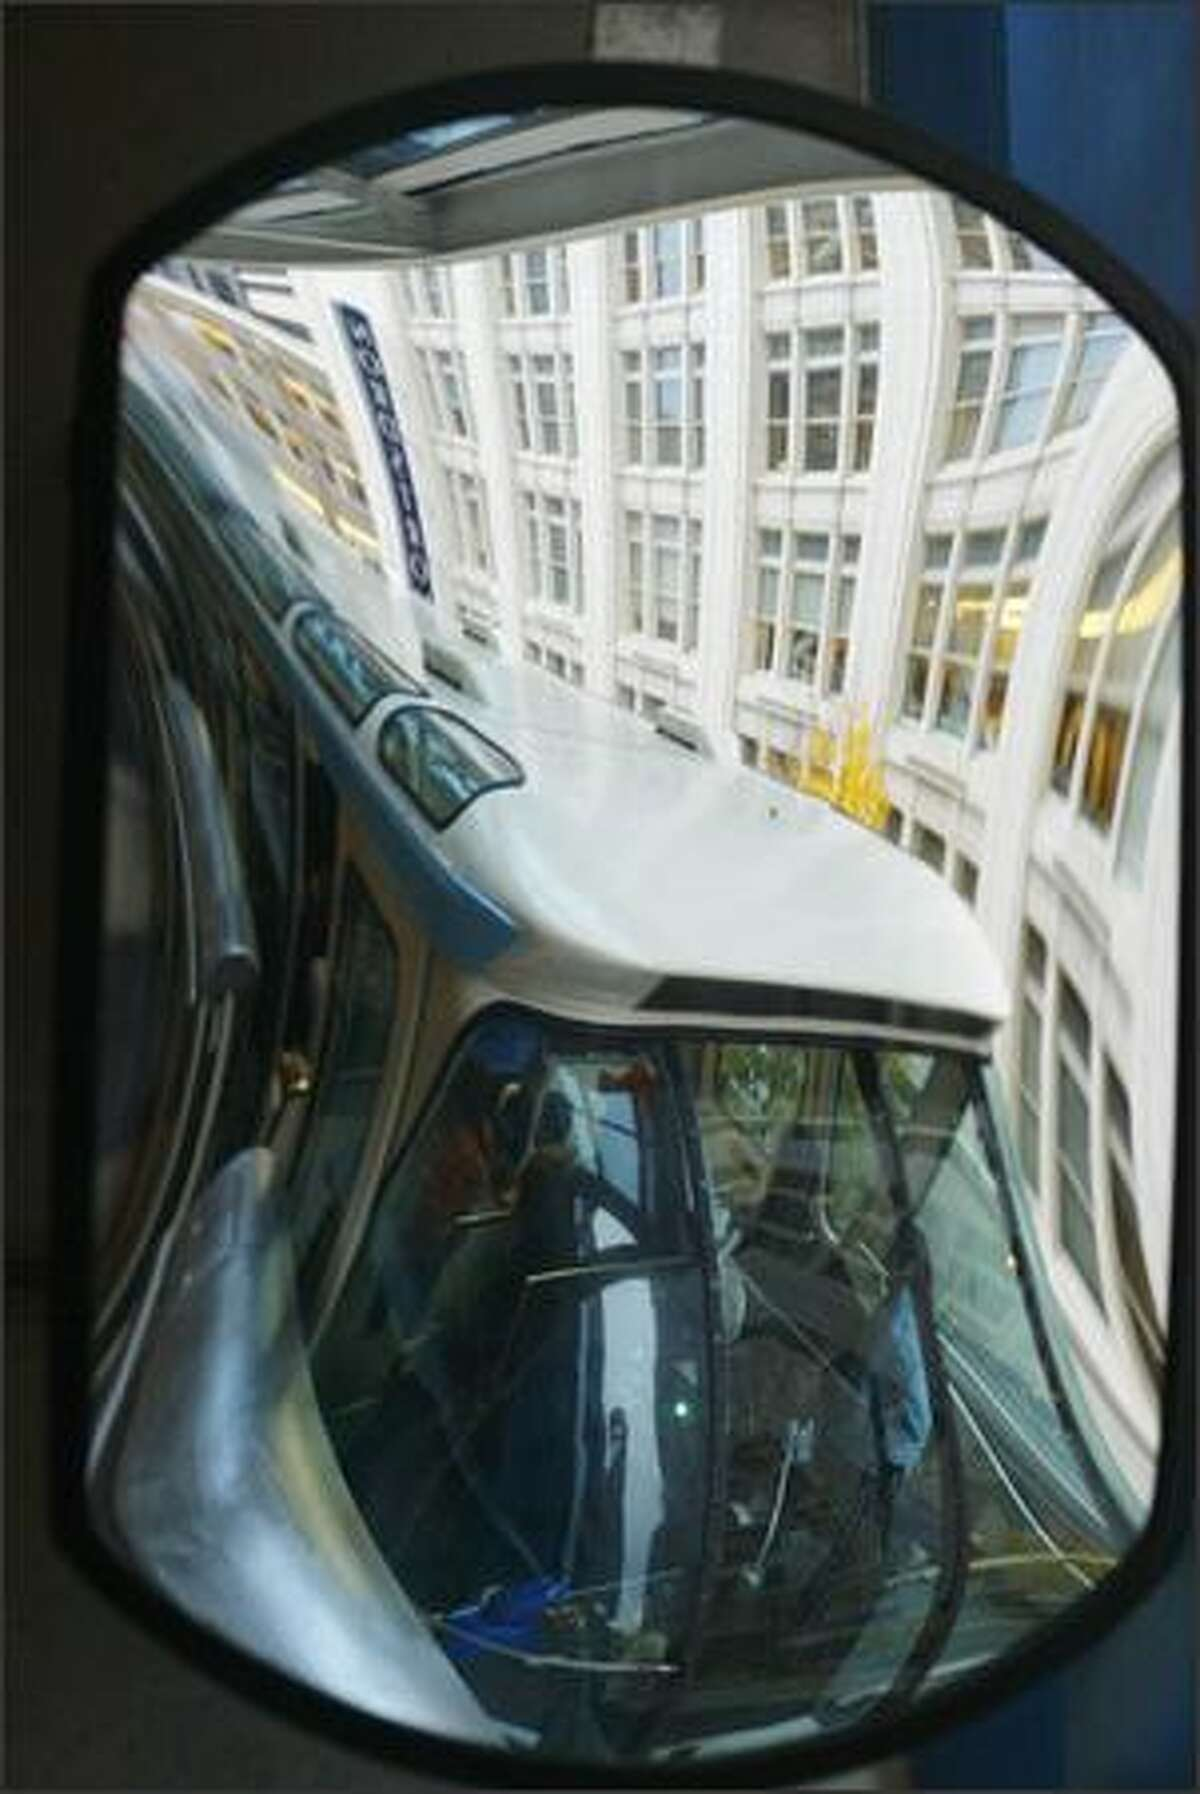 A mirror reflection shows the Seattle Monorail's blue train pulls into Westlake Center. The popular tourist attraction is back in service after months of tests and maintenance following two stalls during the summer.